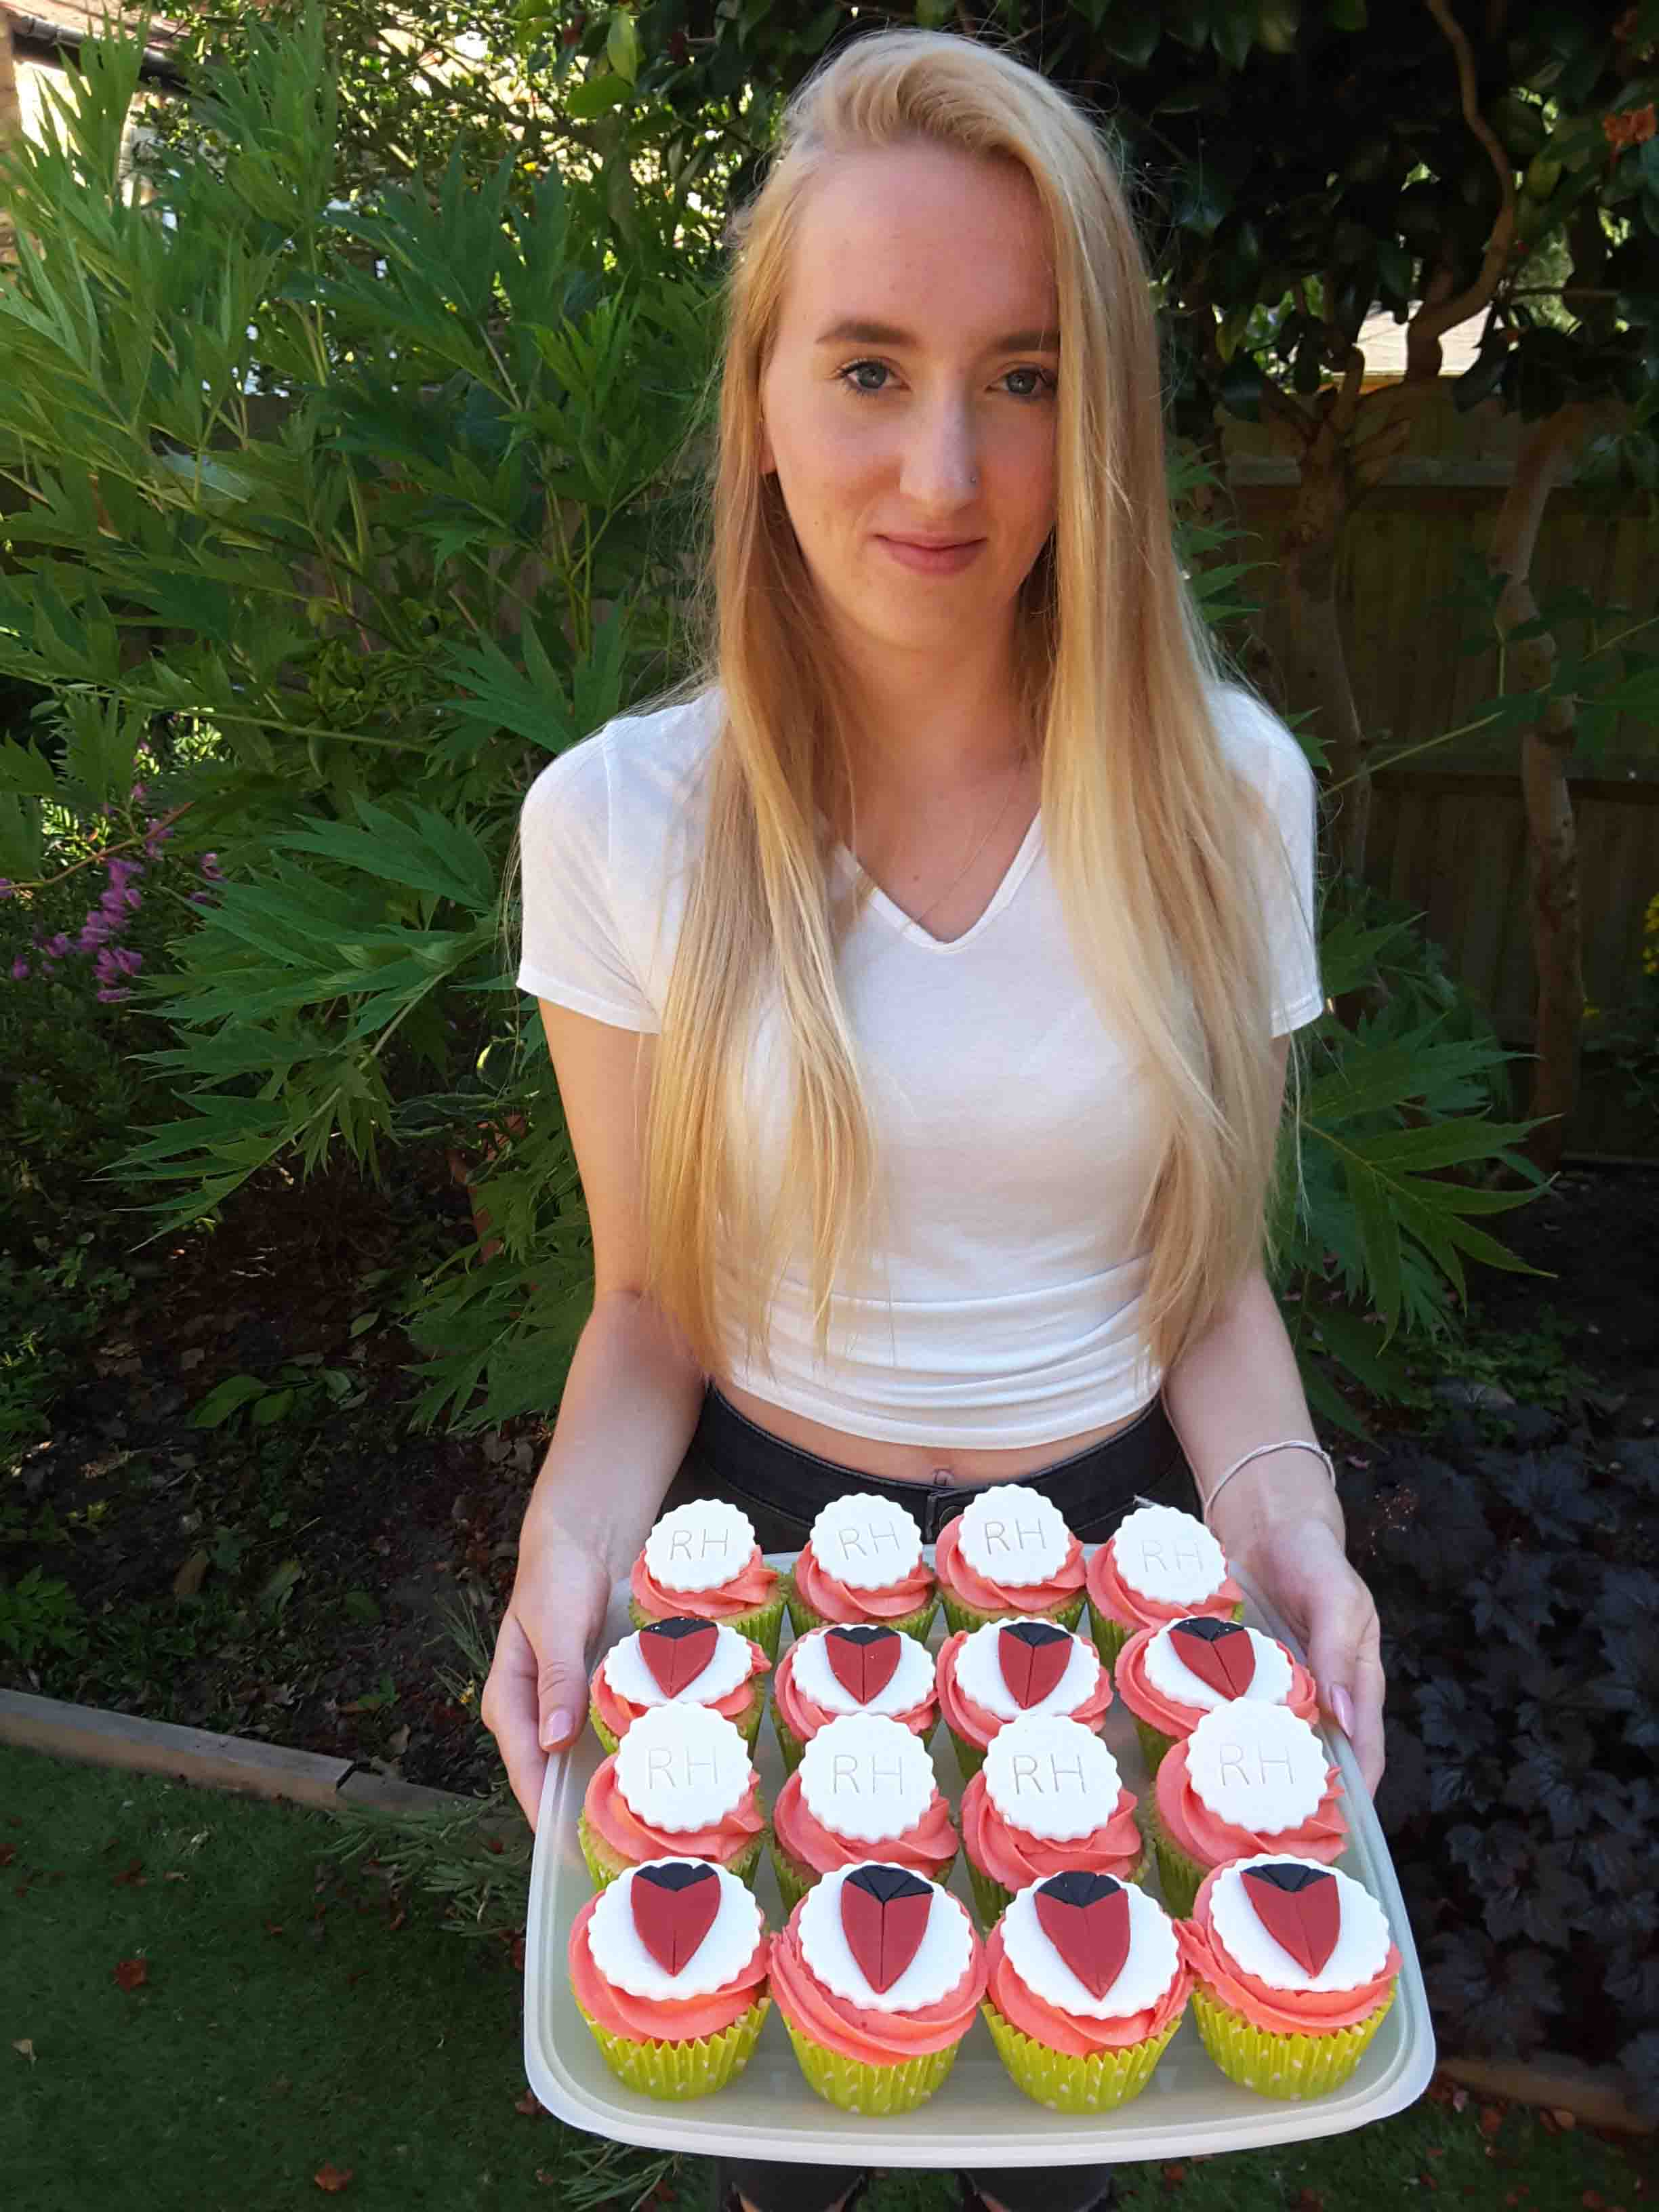 Photo of young woman holding tray of cupcakes decorated with Chelsea Pensioner shield